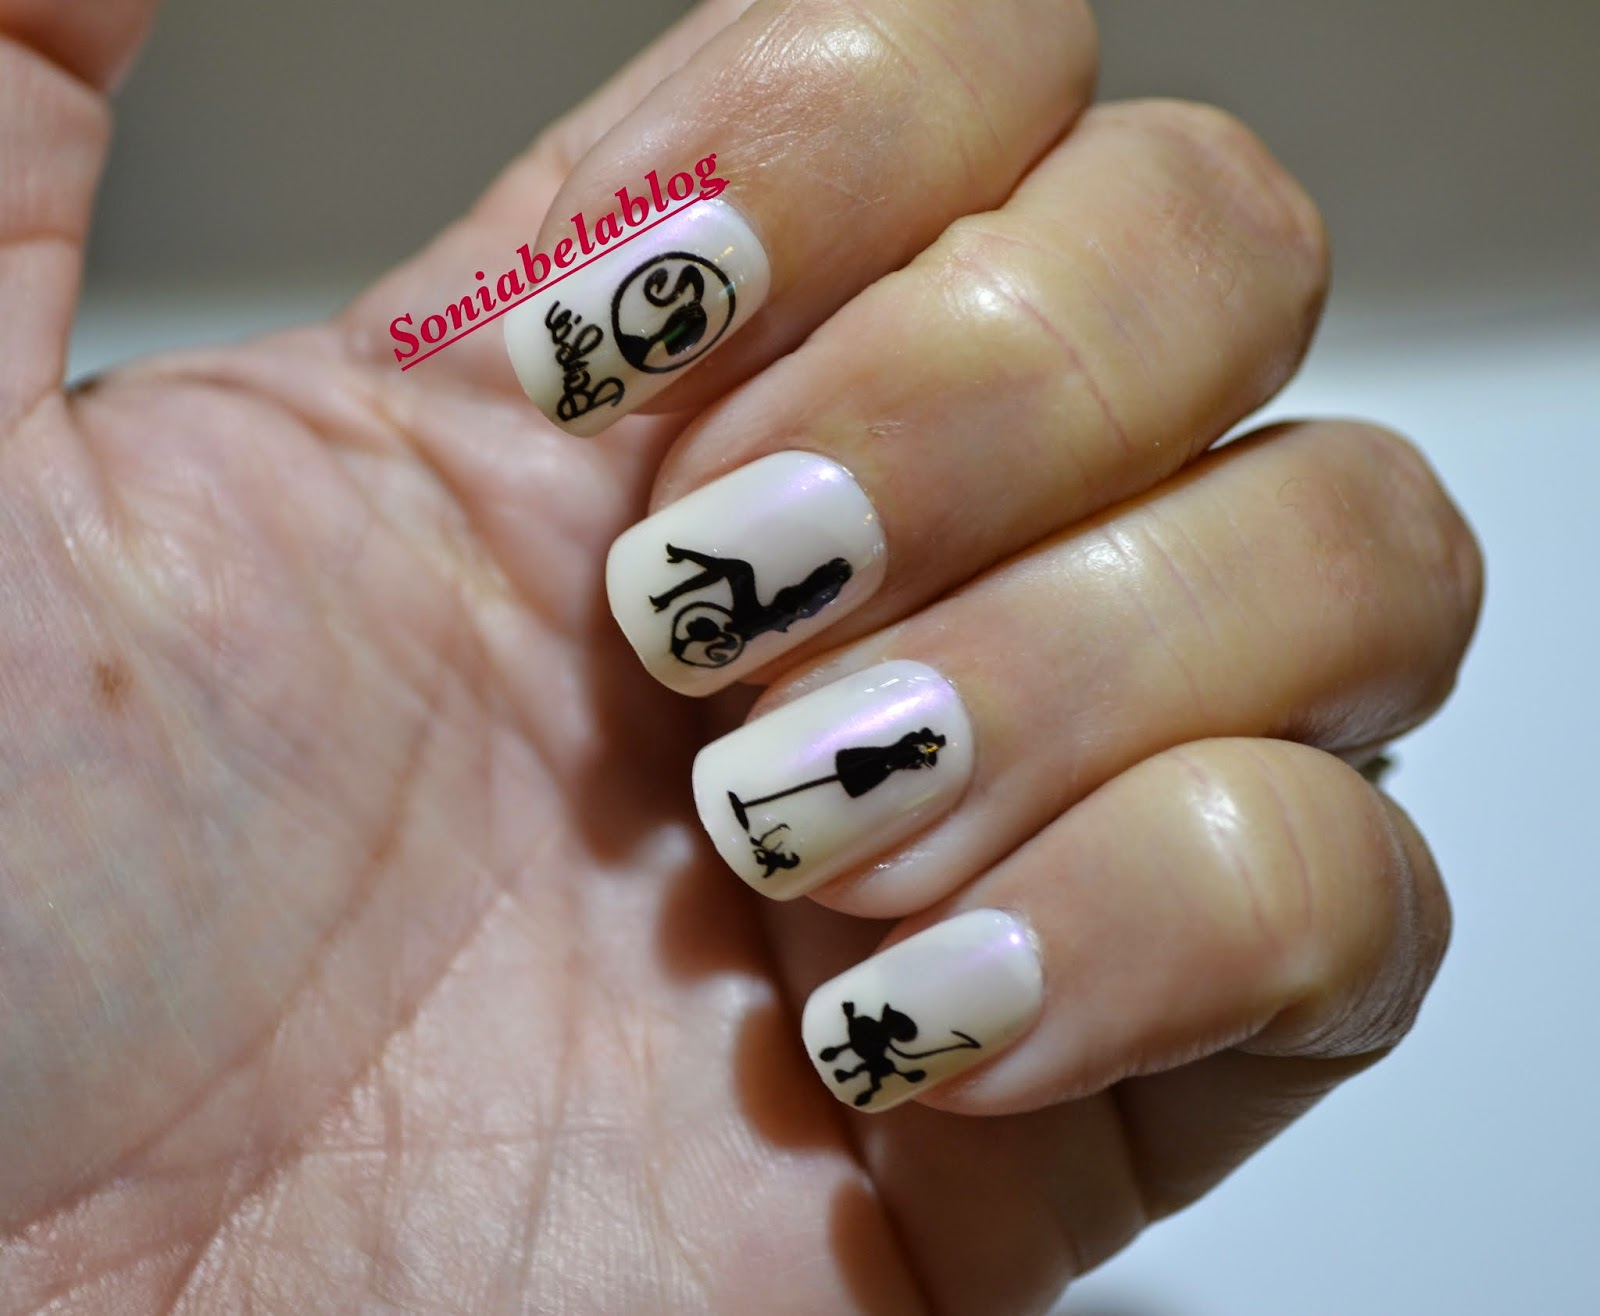 Nail design ideas barbie in black and white easy nail art ii nail design ideas barbie in black and white easy nail art ii soniabela blog prinsesfo Images